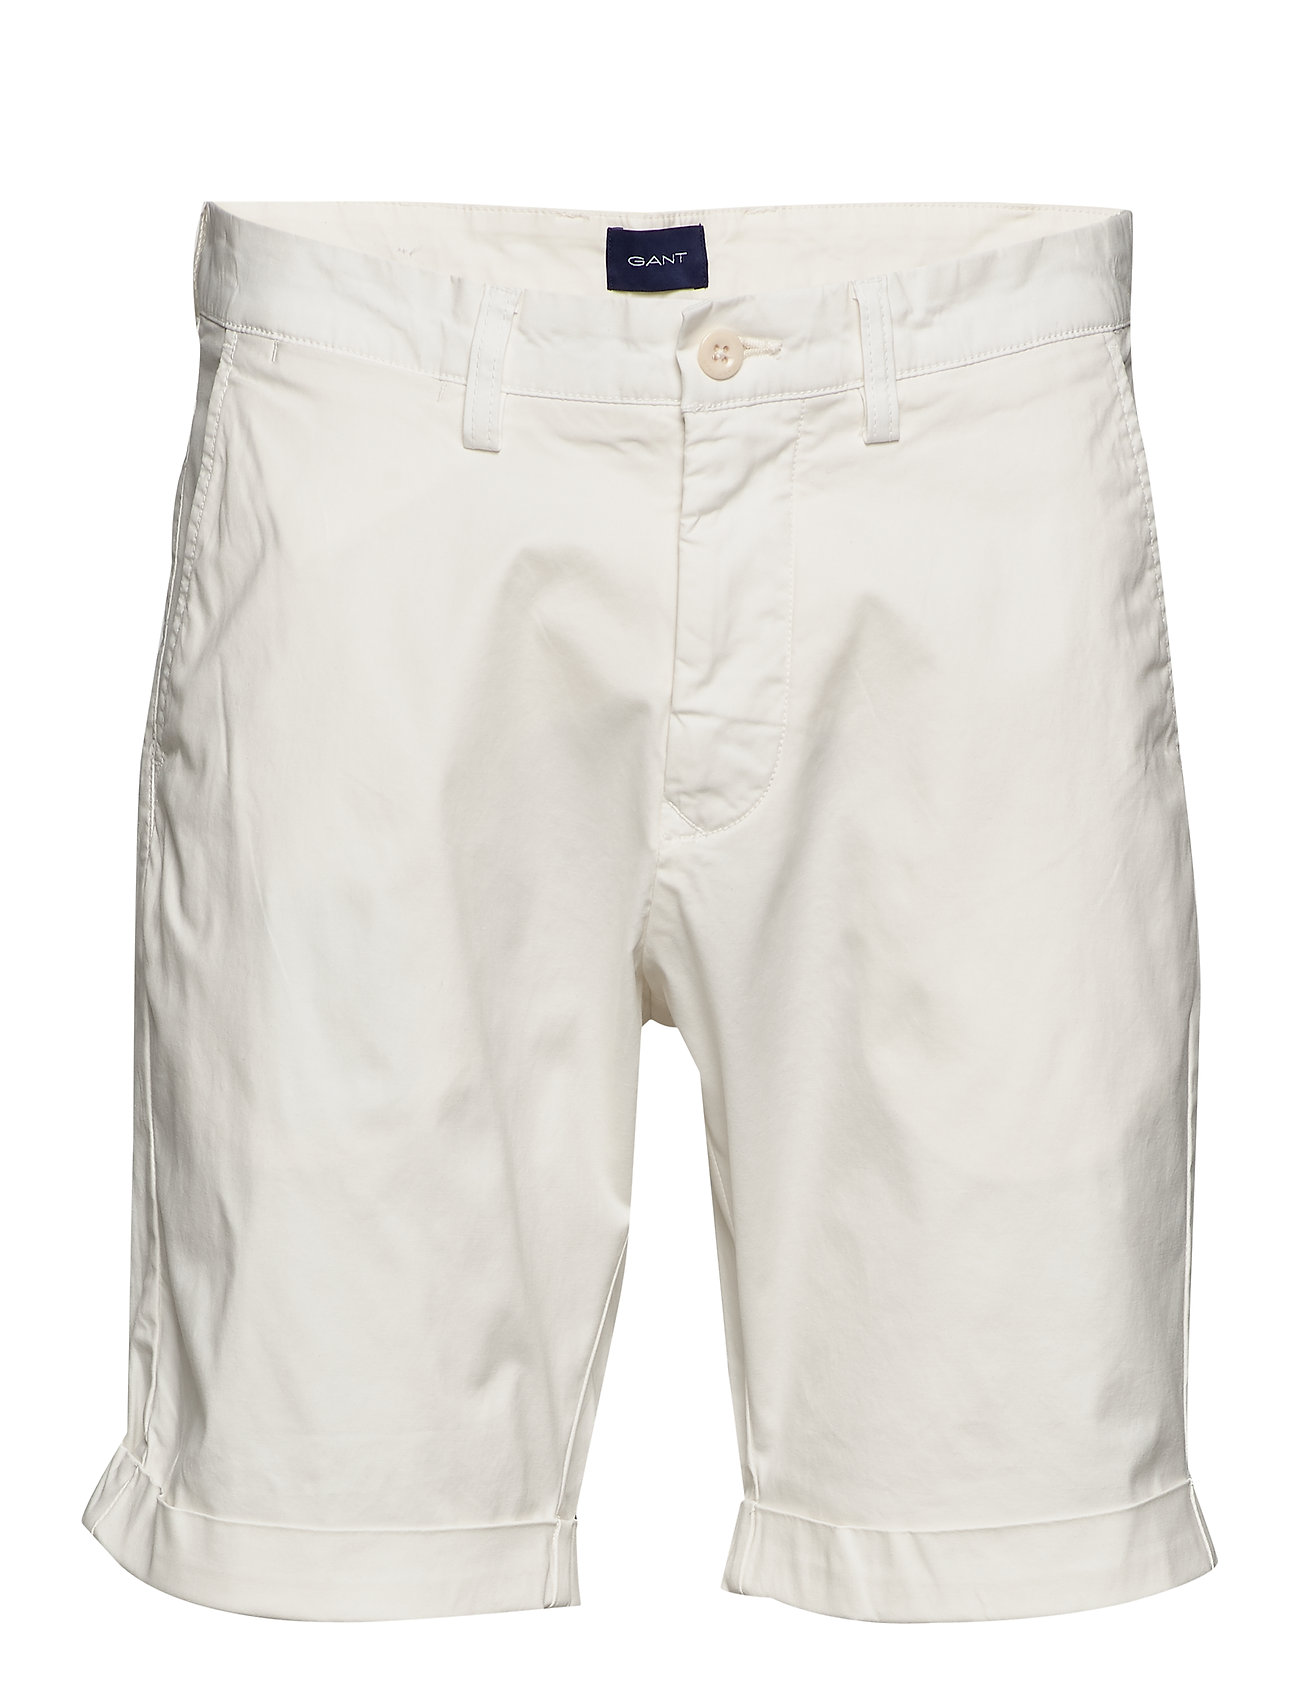 Gant D2. REGULAR SUNFADED SHORTS - EGGSHELL